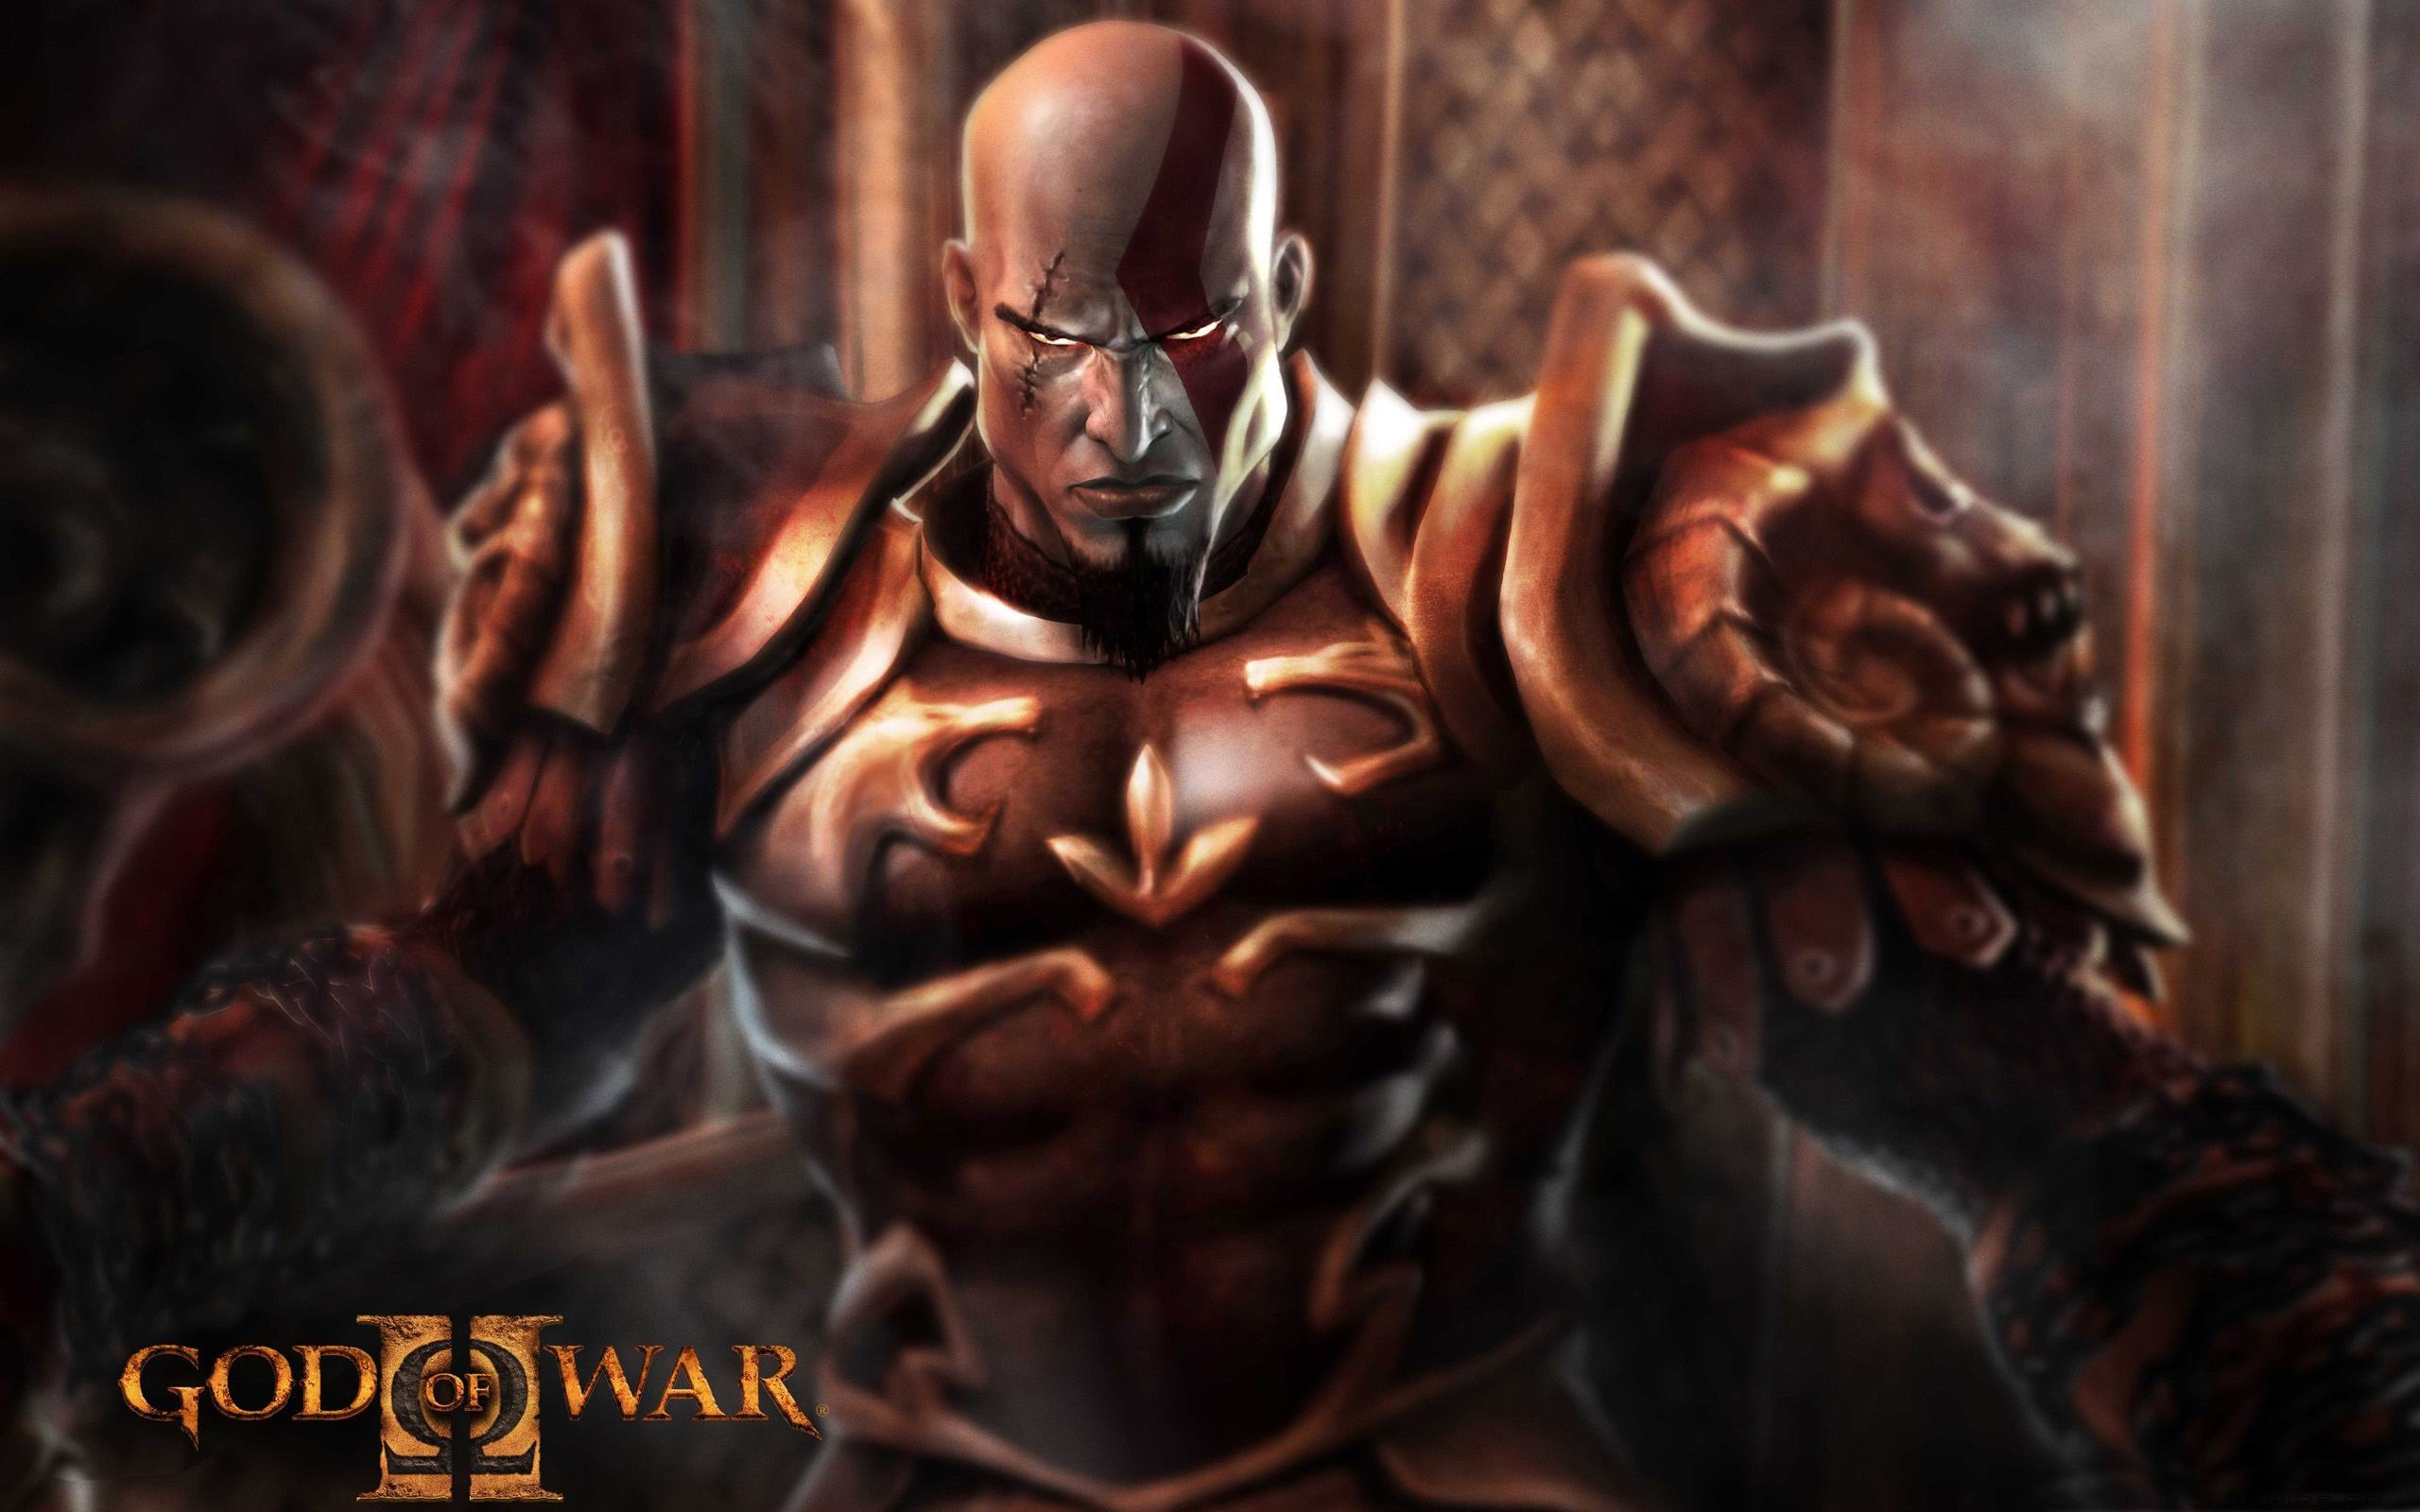 God Of War Hd Game Wallpaper 16 Avance 10wallpapercom